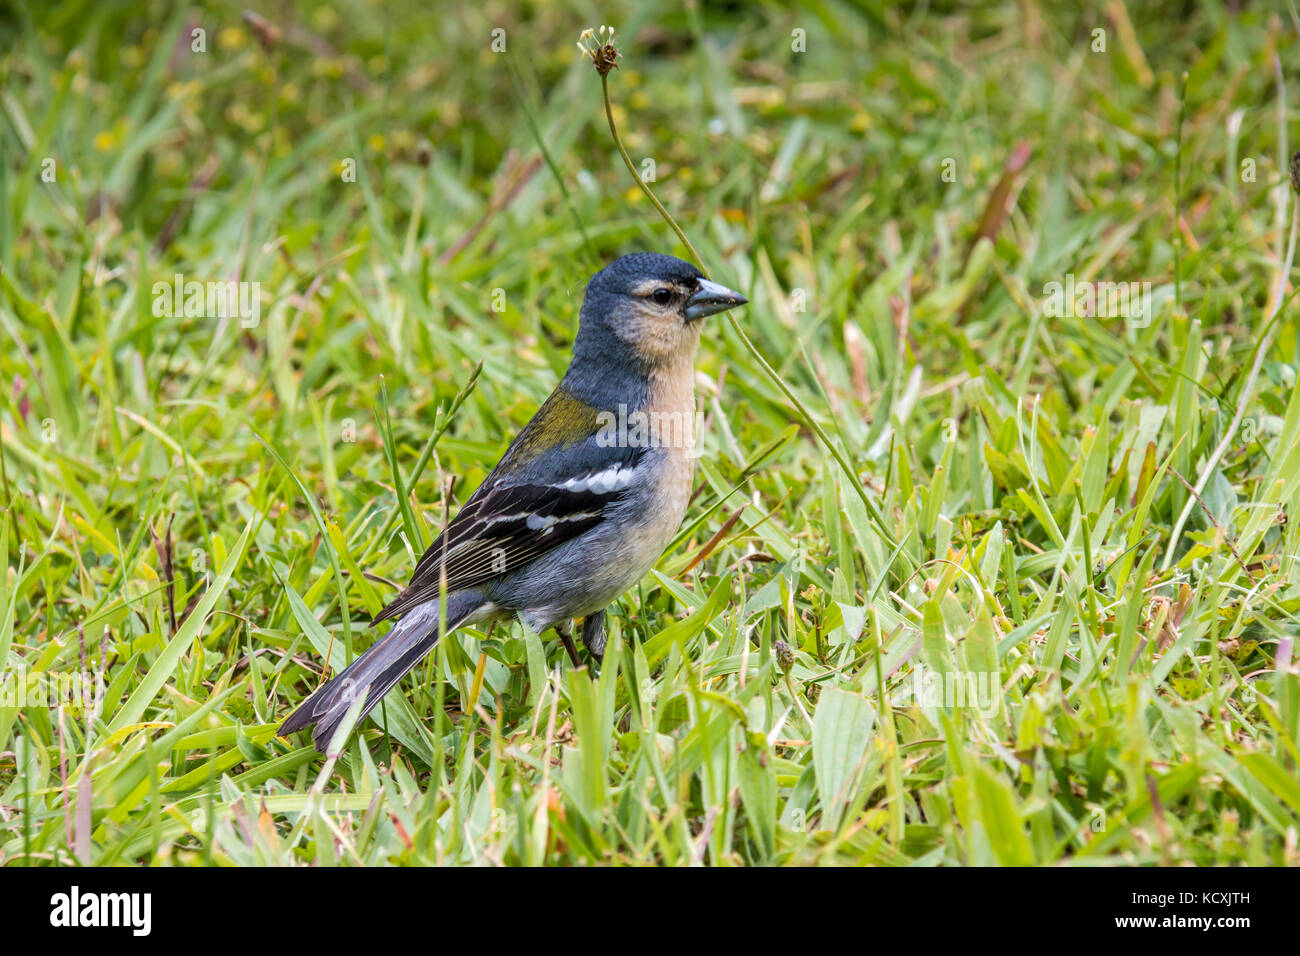 Azores Chaffinch (Fringilla coelebs moreletti) found by the Furnas lake in São Miguel island. - Stock Image